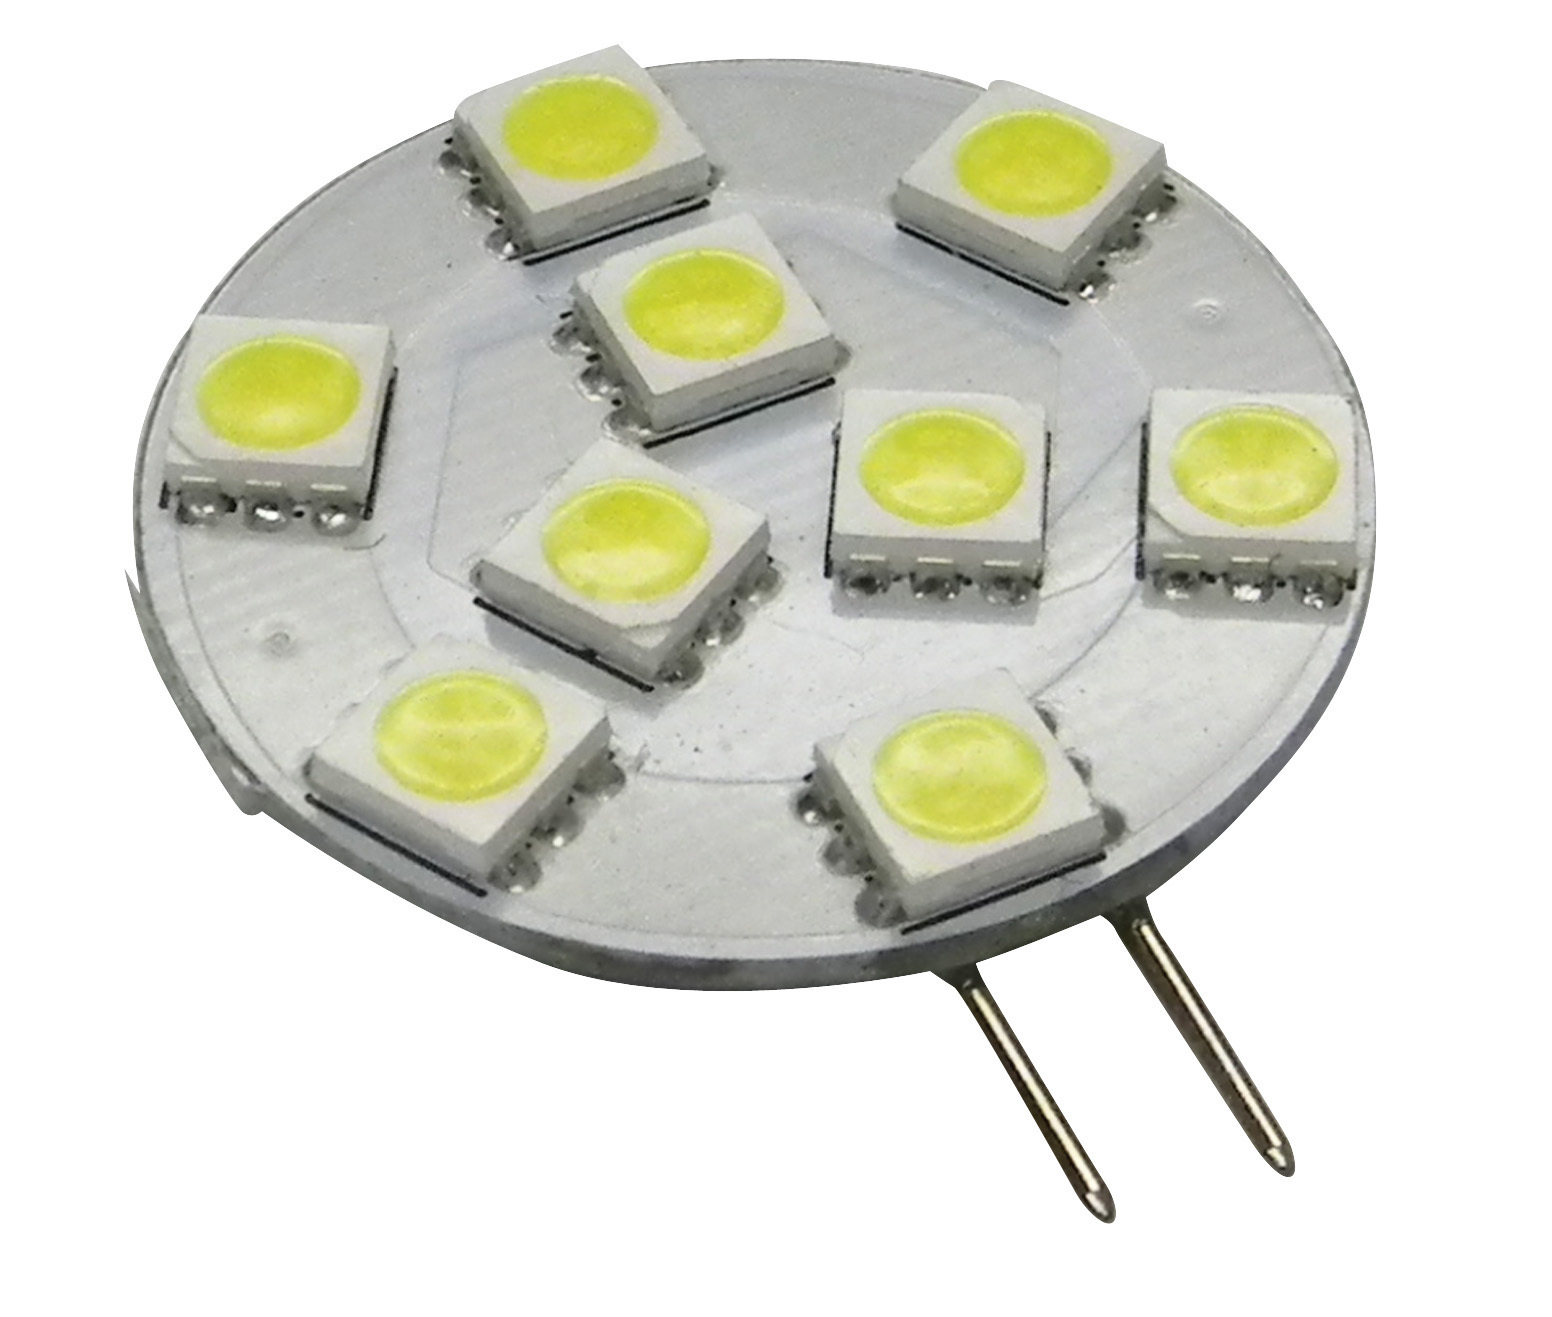 LED Bulb - 9 Diode with Side Mount - Warm White 52626-ww